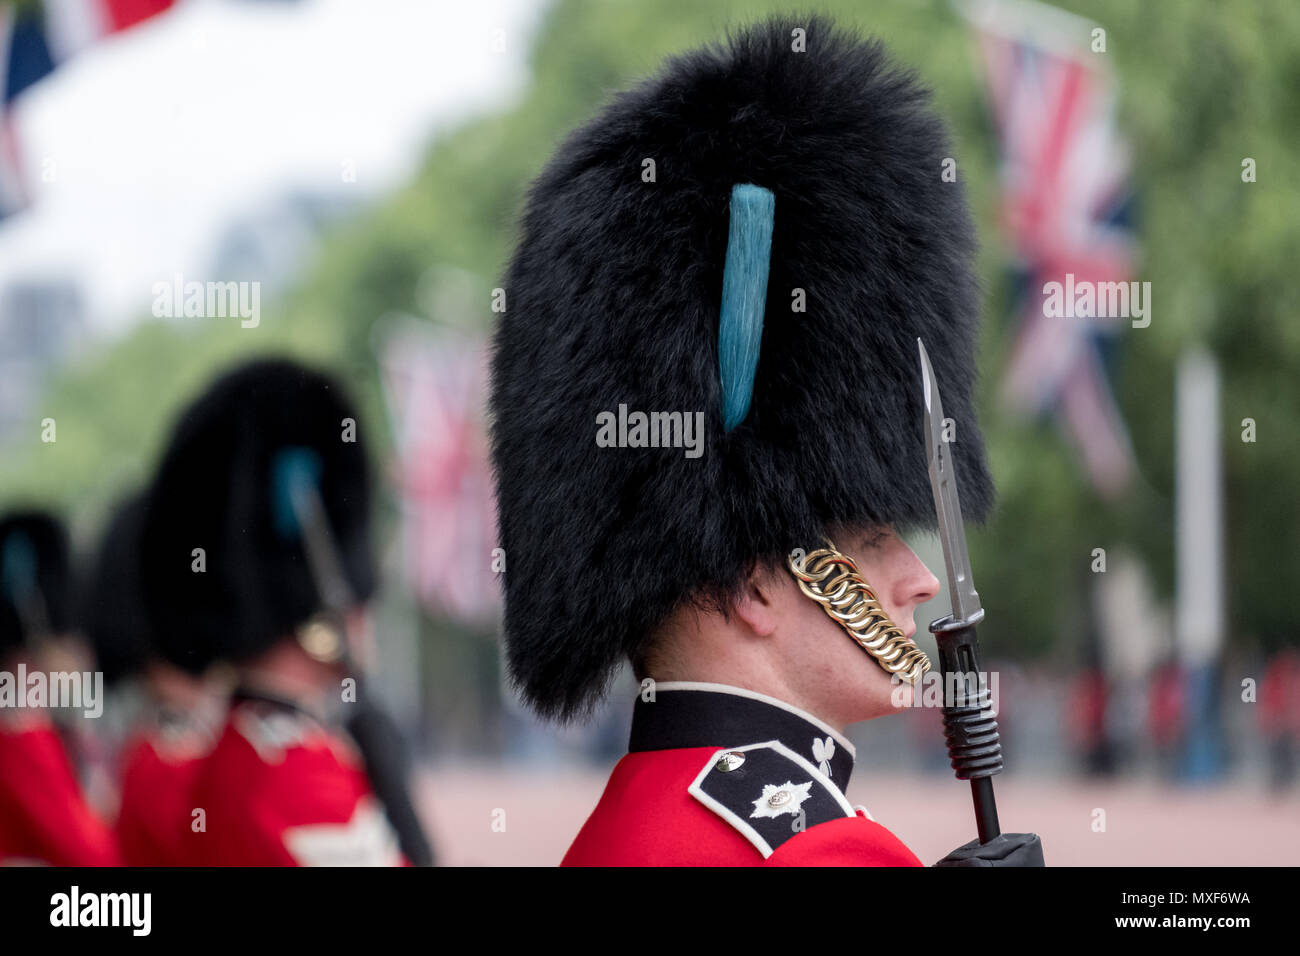 Amid tight security, guardsmen in red and black uniform and bearskins line The Mall during the annual Trooping the Colour military ceremony. - Stock Image